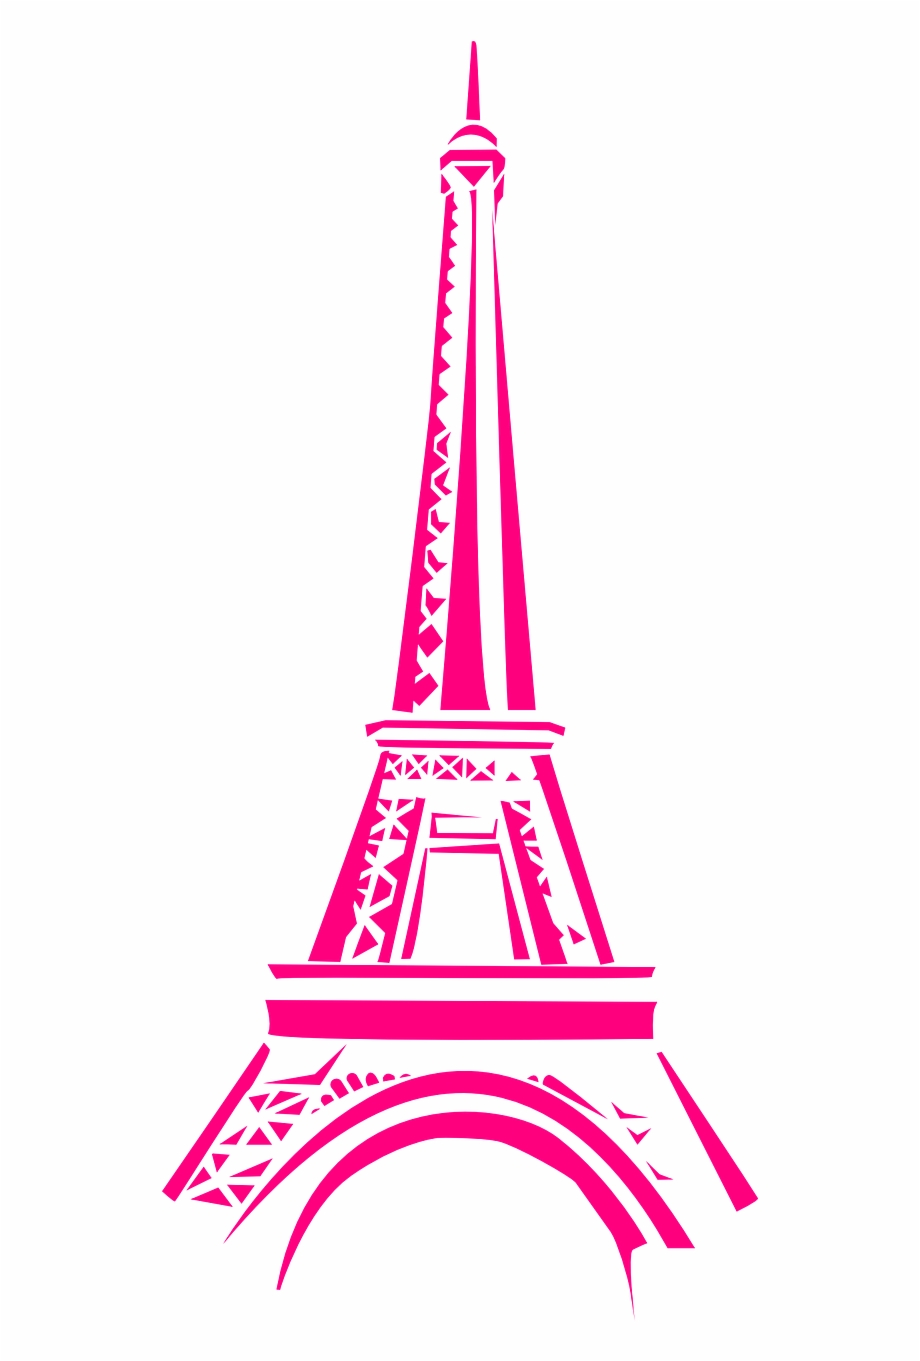 Eiffel Tower Tower Paris France Png Image.